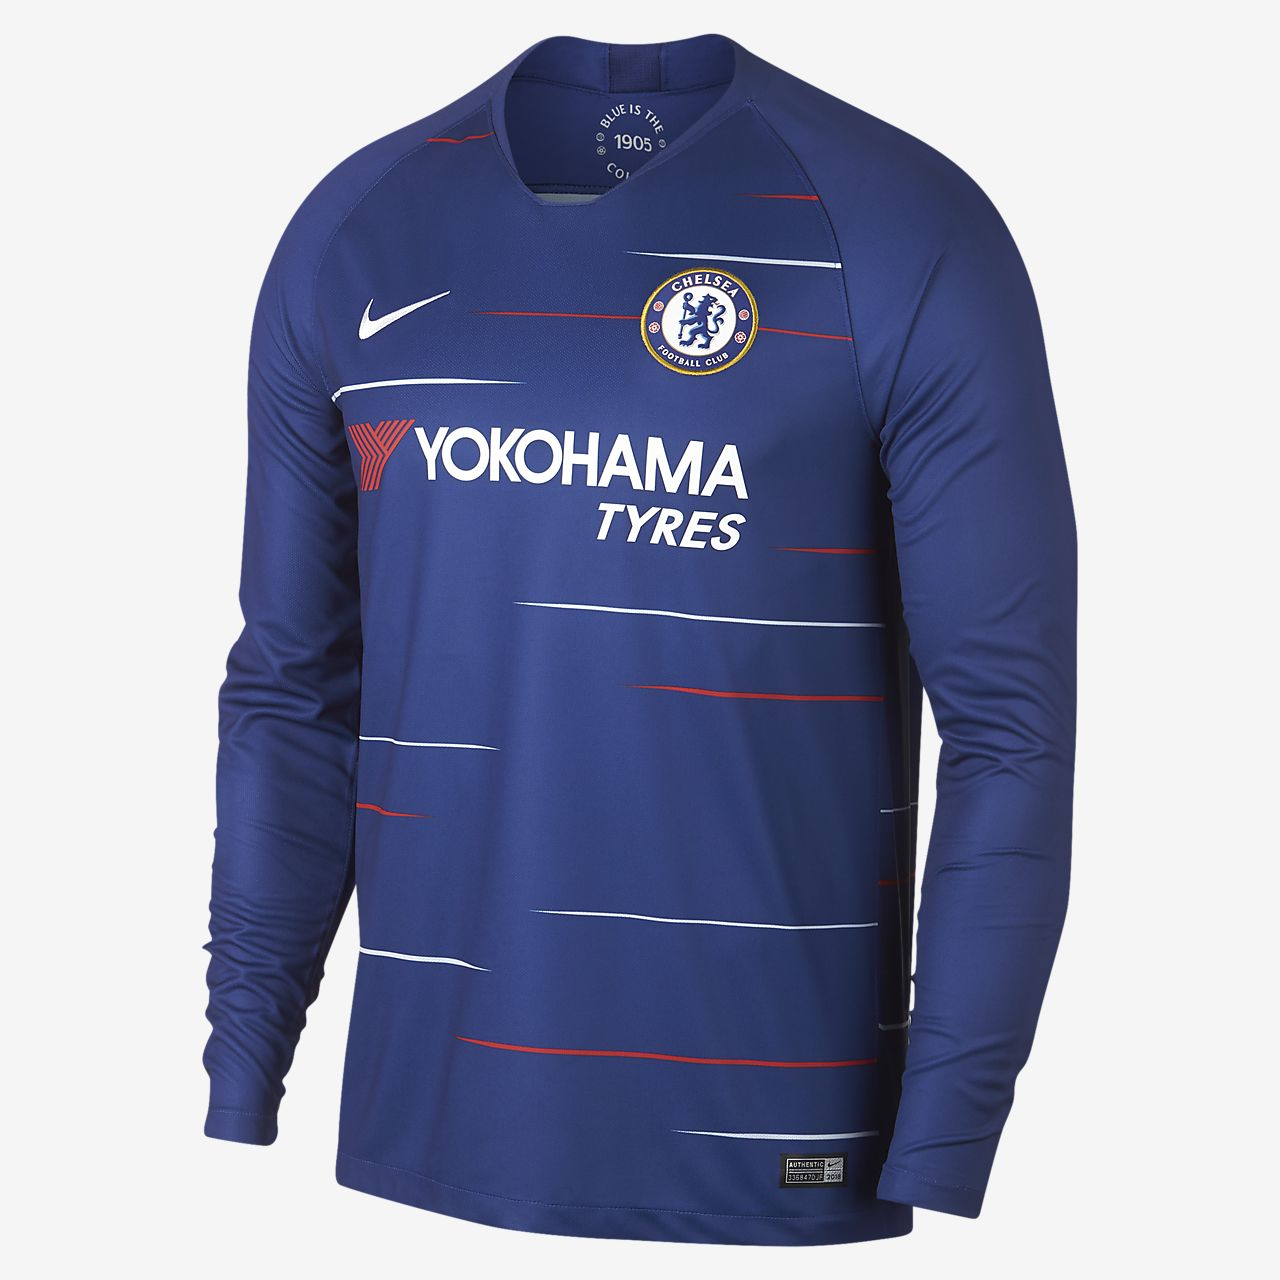 dcc5867ec 2018 19 Chelsea FC Stadium Home Men s Long-Sleeve Football Shirt ...